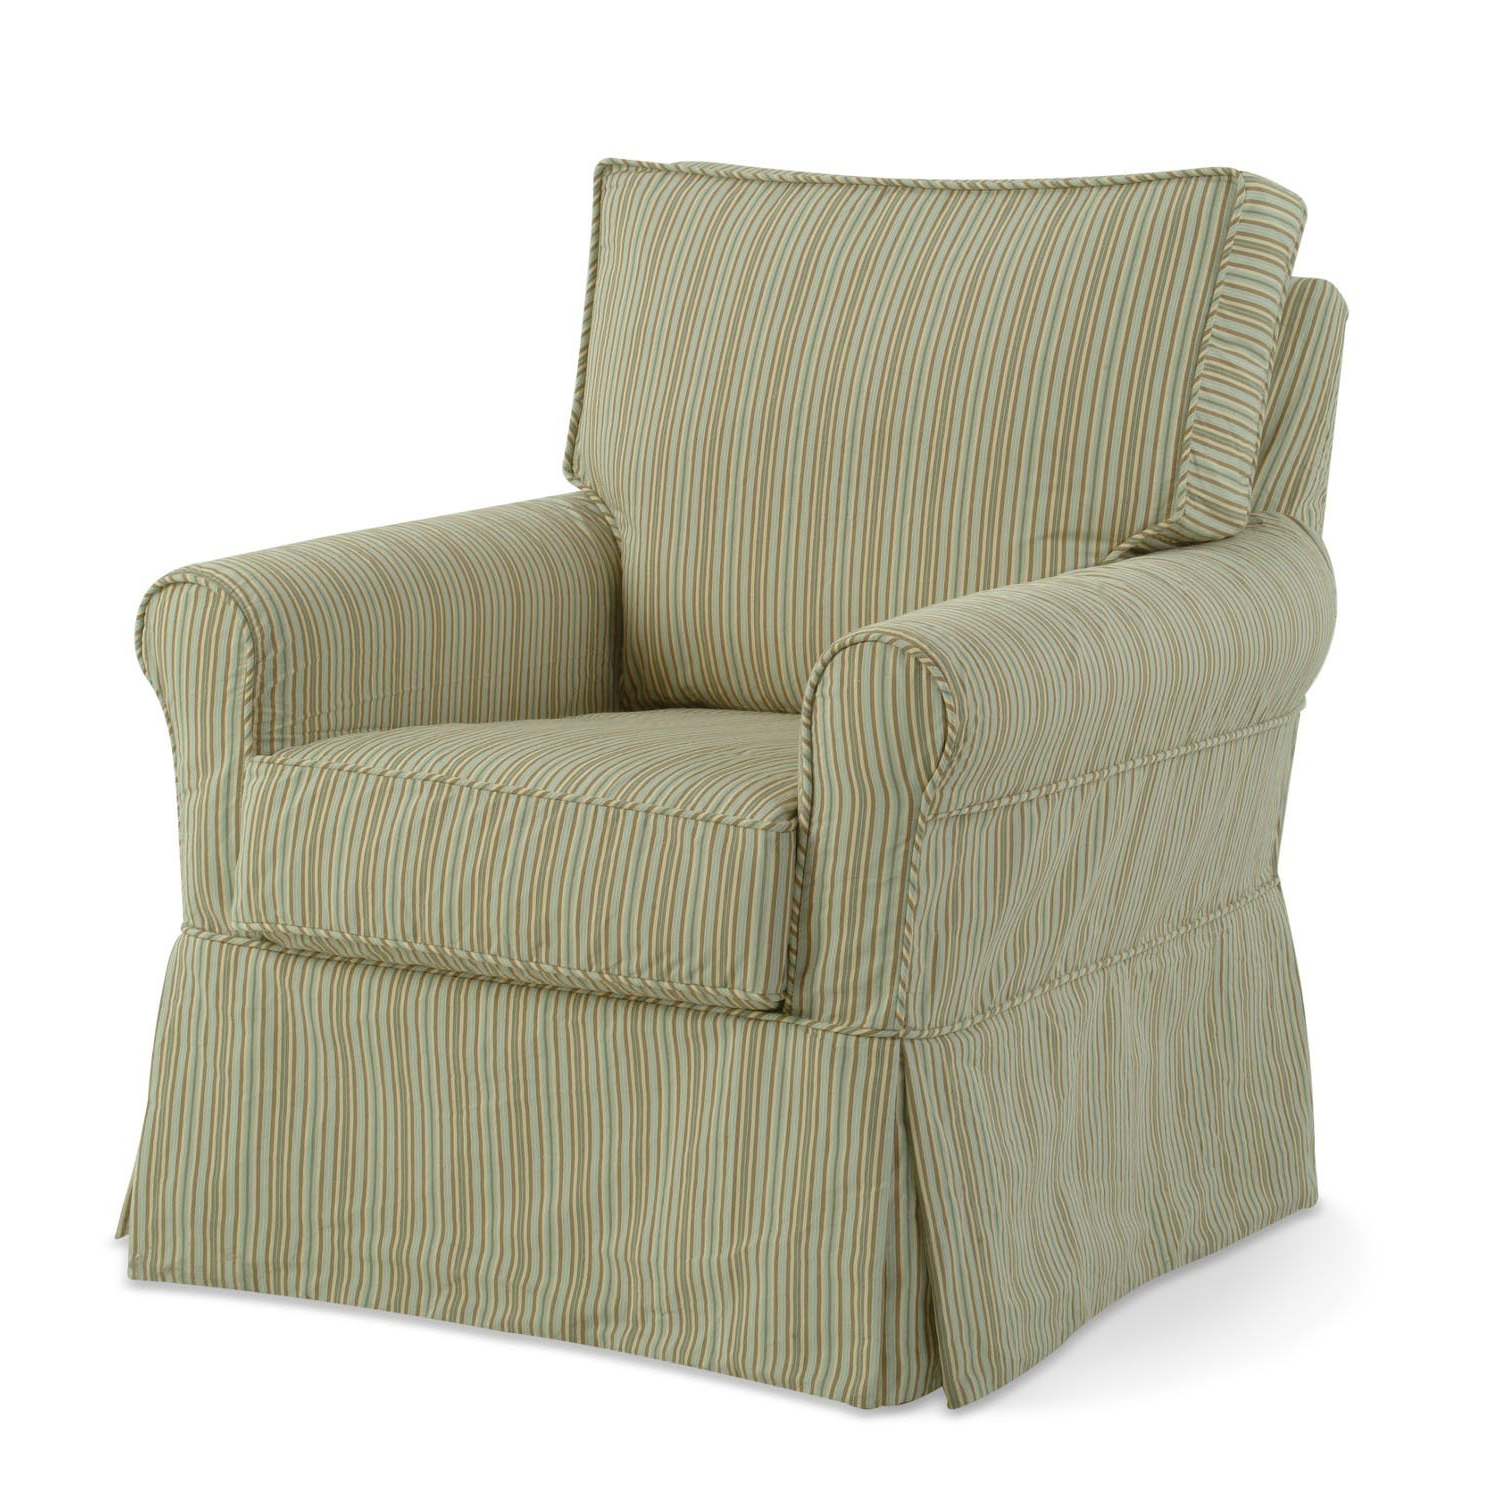 American Country Throughout Latest Loft Smokey Swivel Accent Chairs (View 3 of 20)